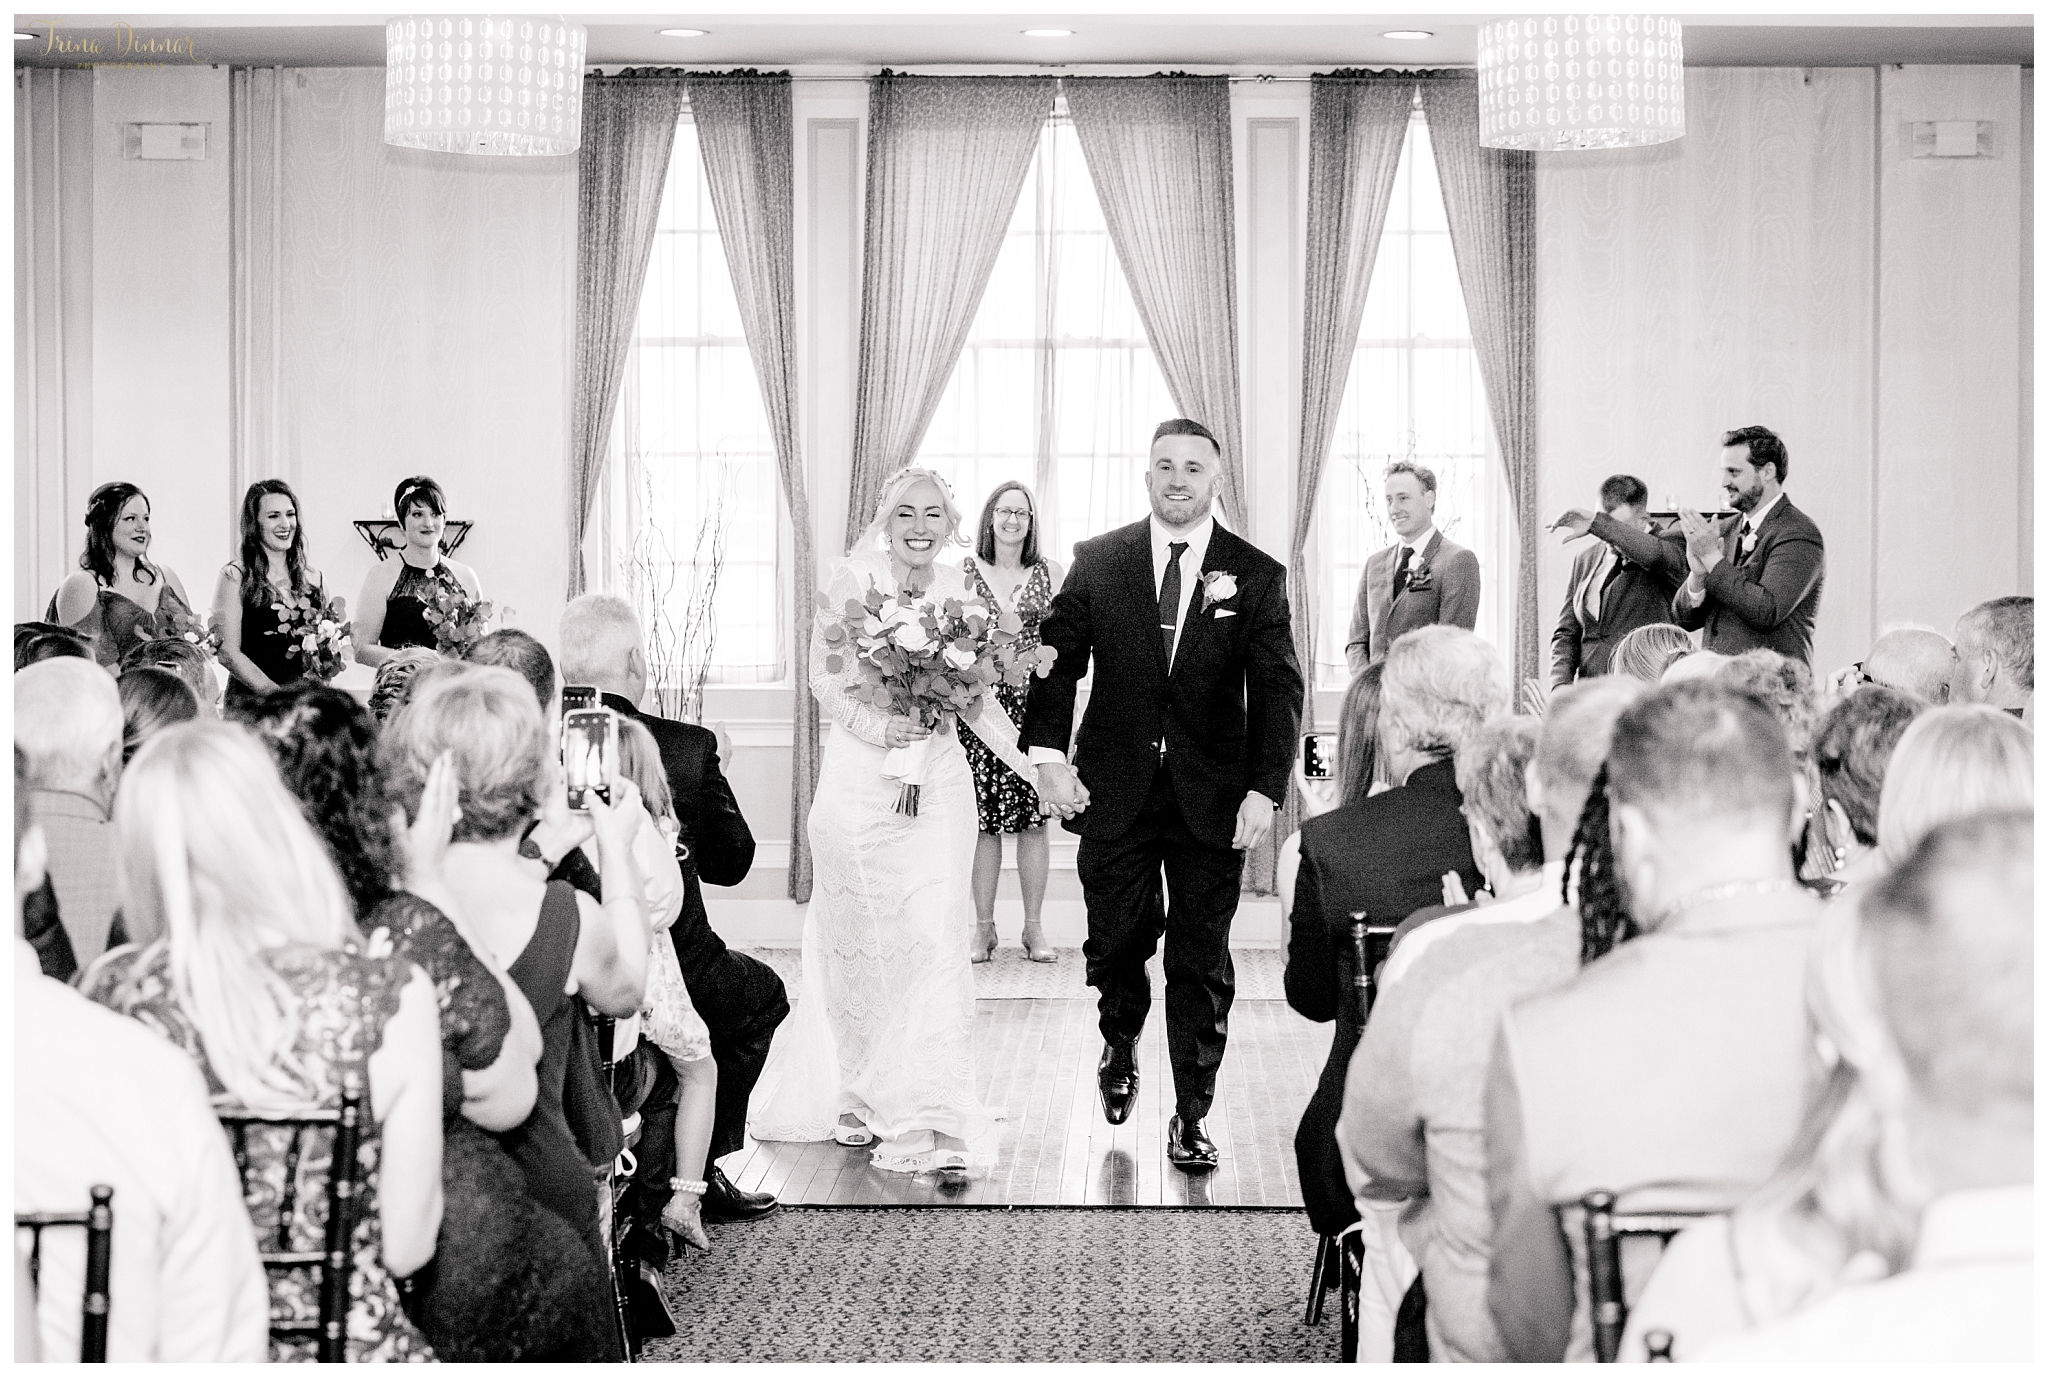 Announced Husband and Wife at The Portland Club